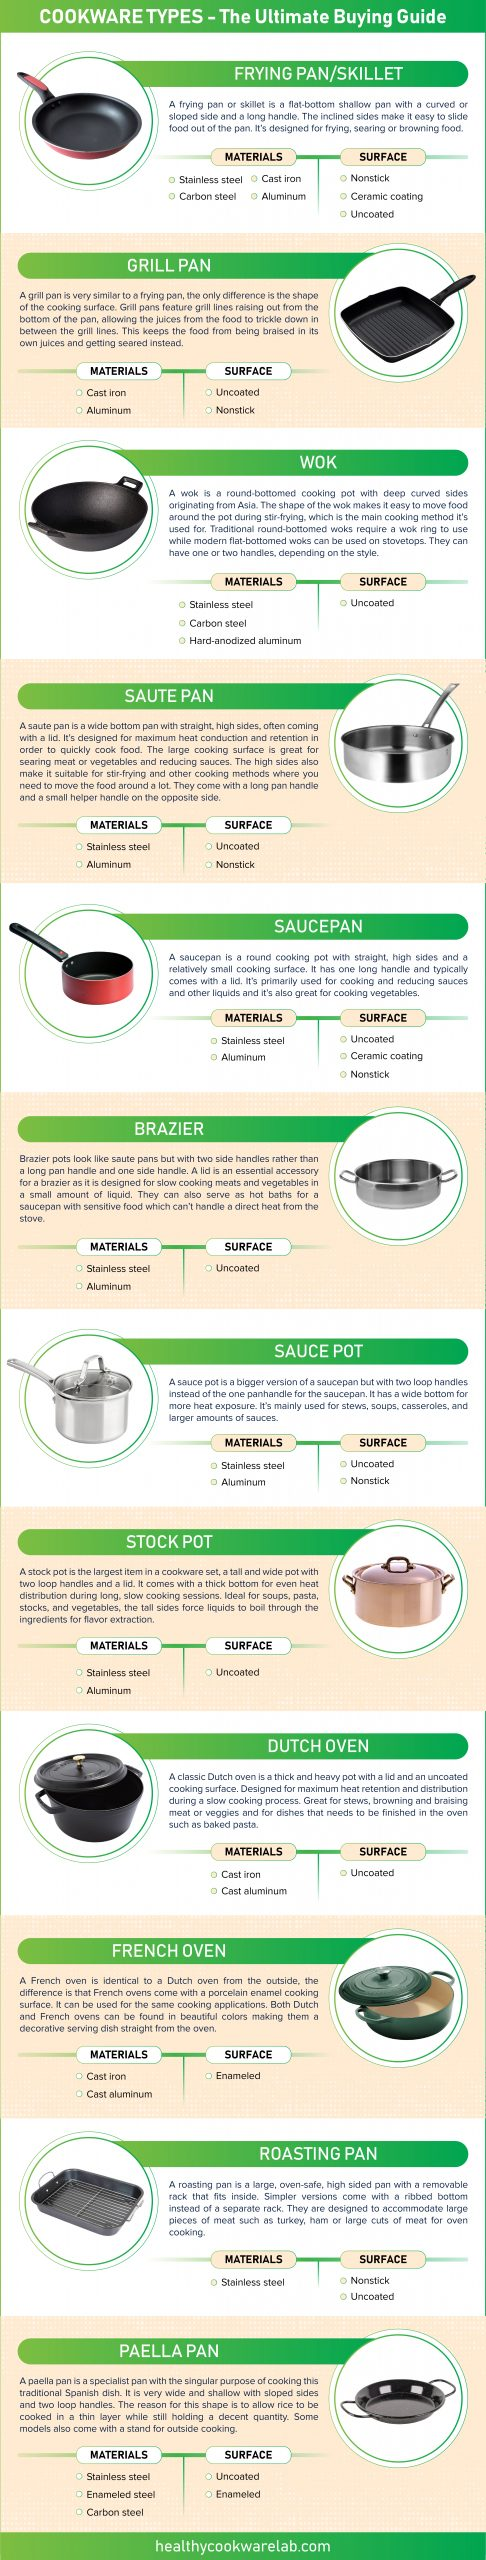 infographic about the types of common cookware in the ultimate buying guide